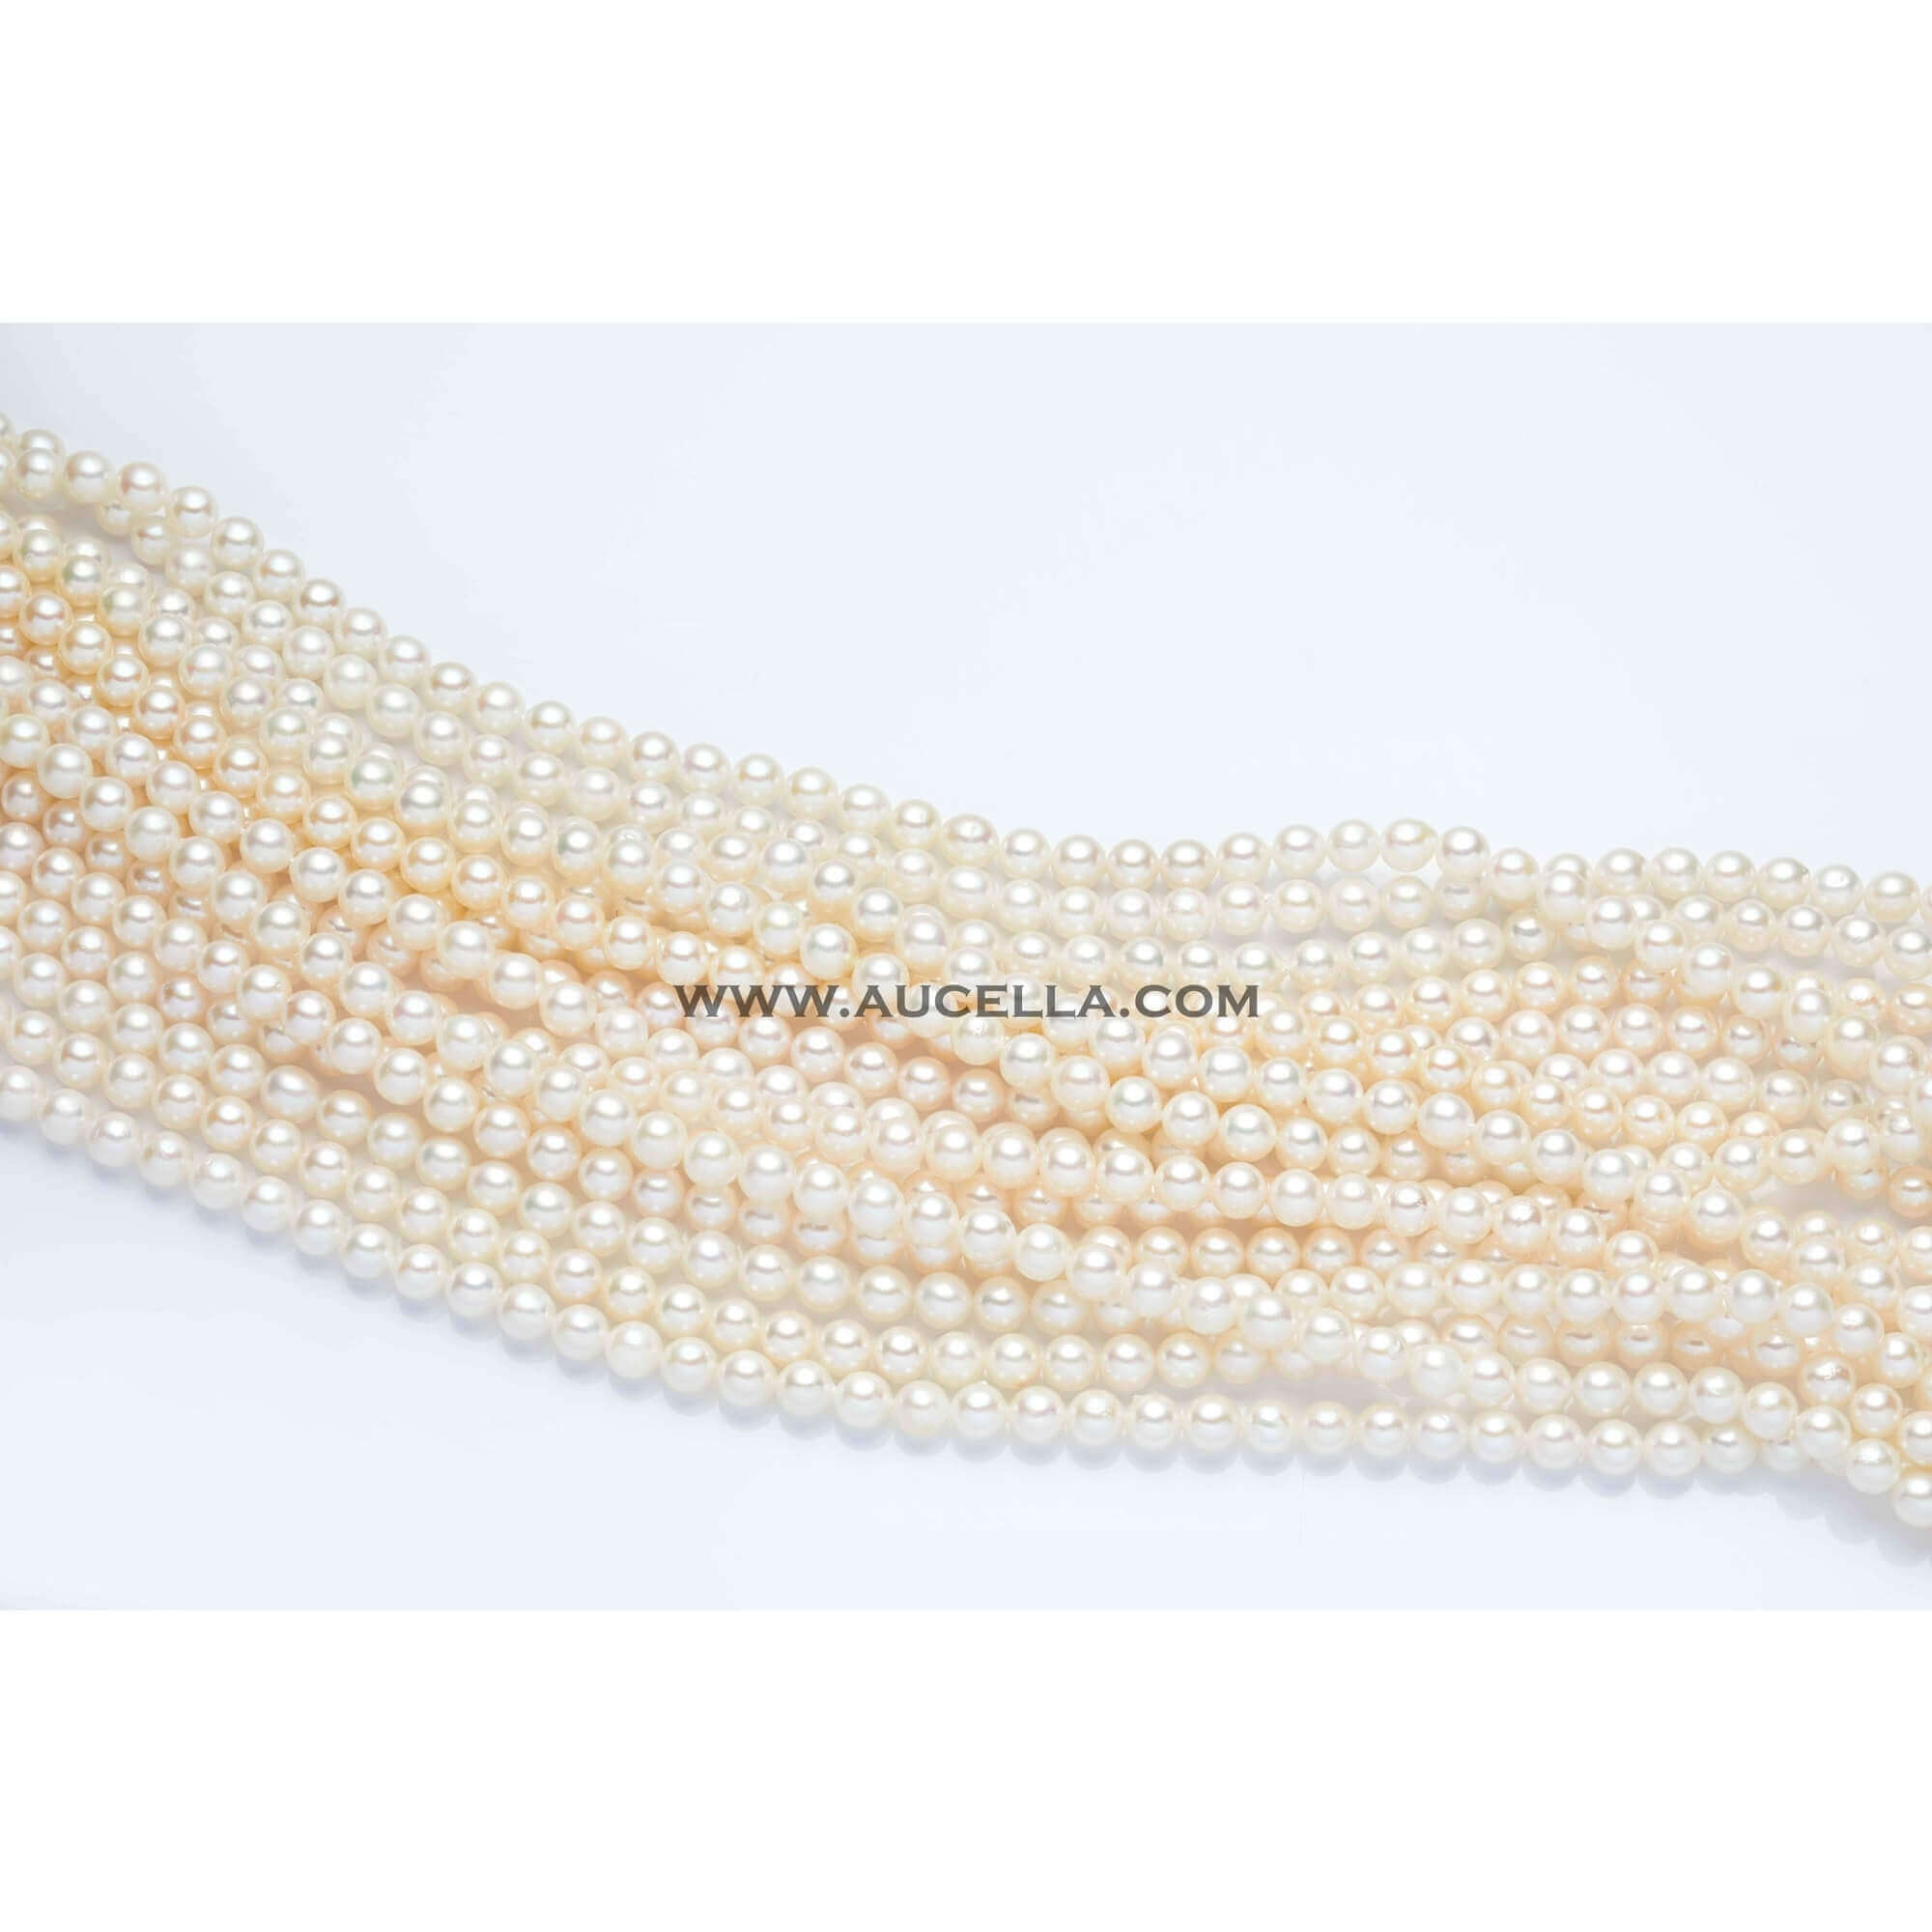 Japan akoya pearls, size 6 - 6,5 mm